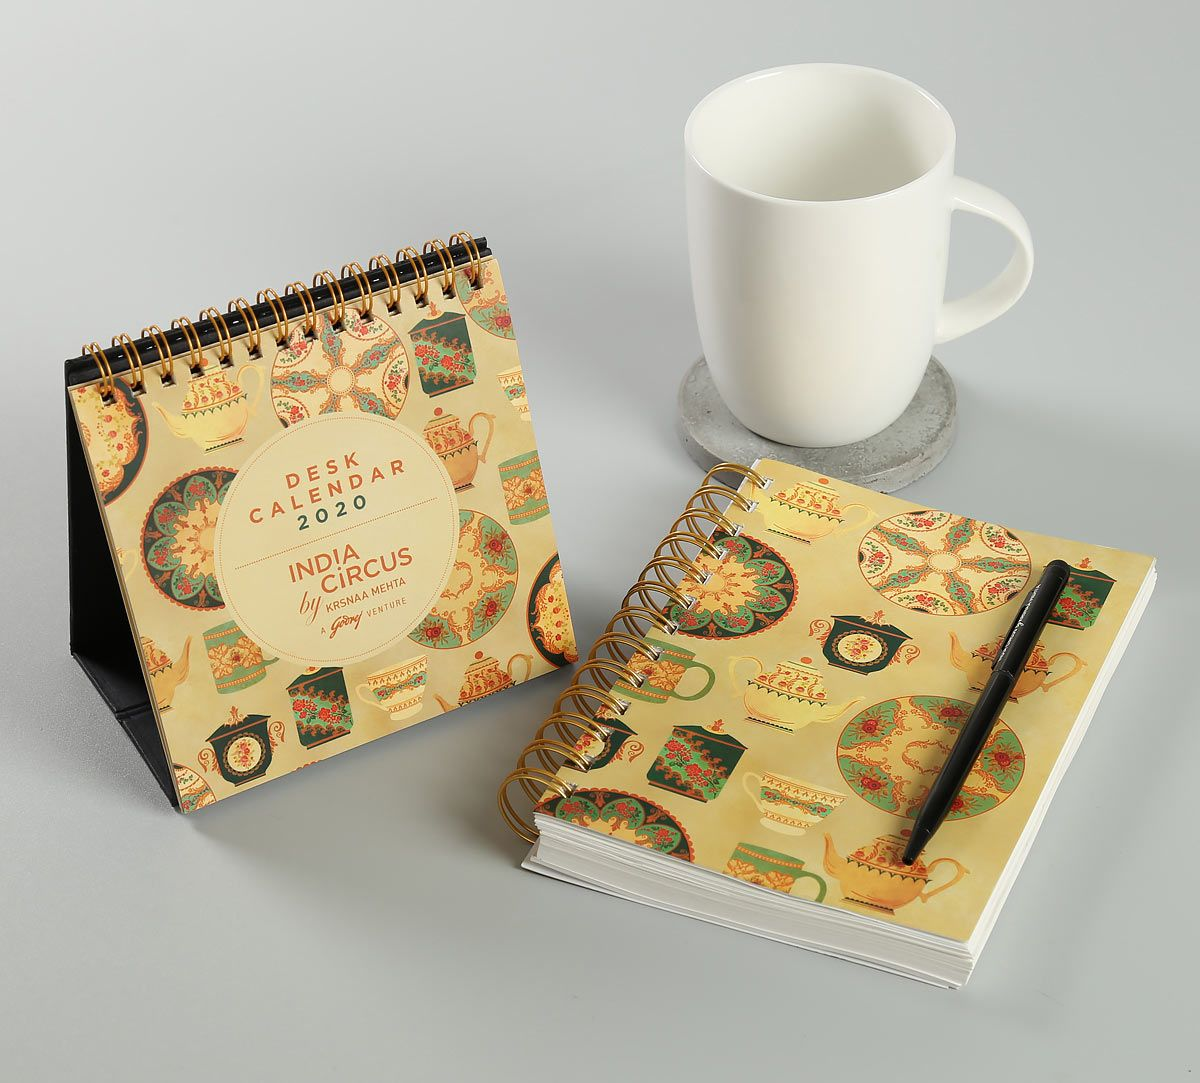 India Circus All About Tea Stationery Combo Set